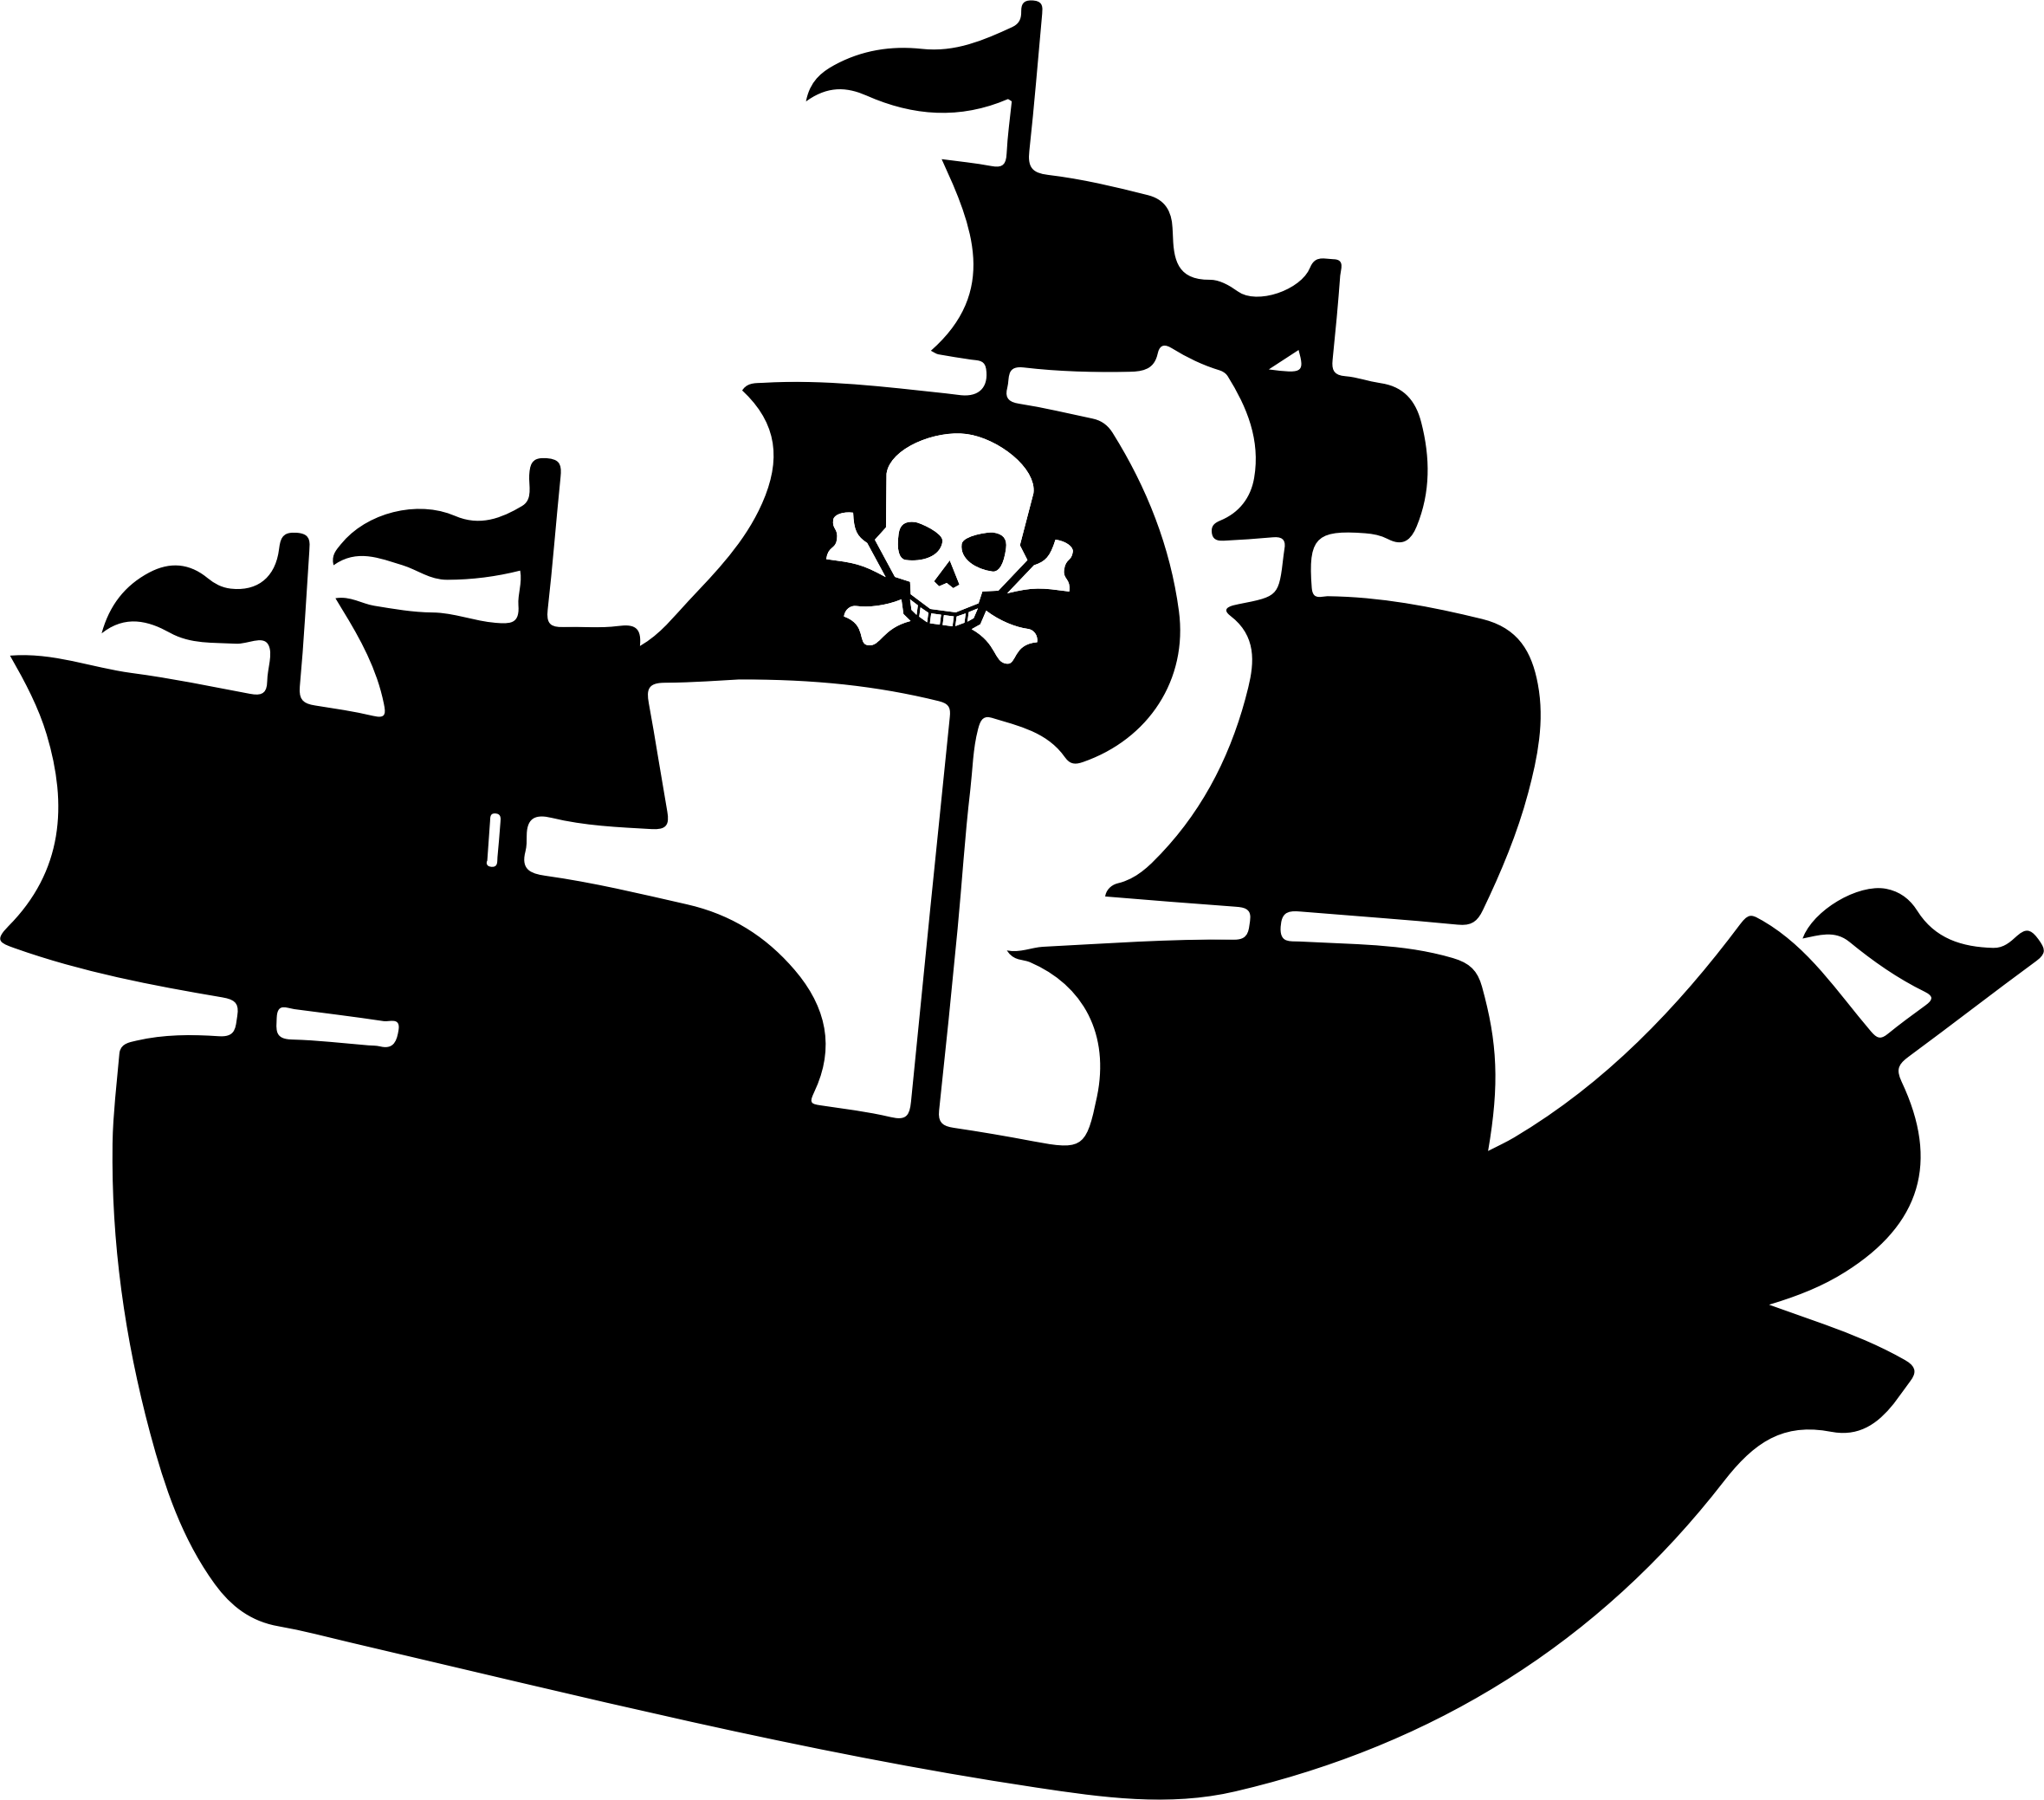 Pirate ship silhouette png. Collection of clipart